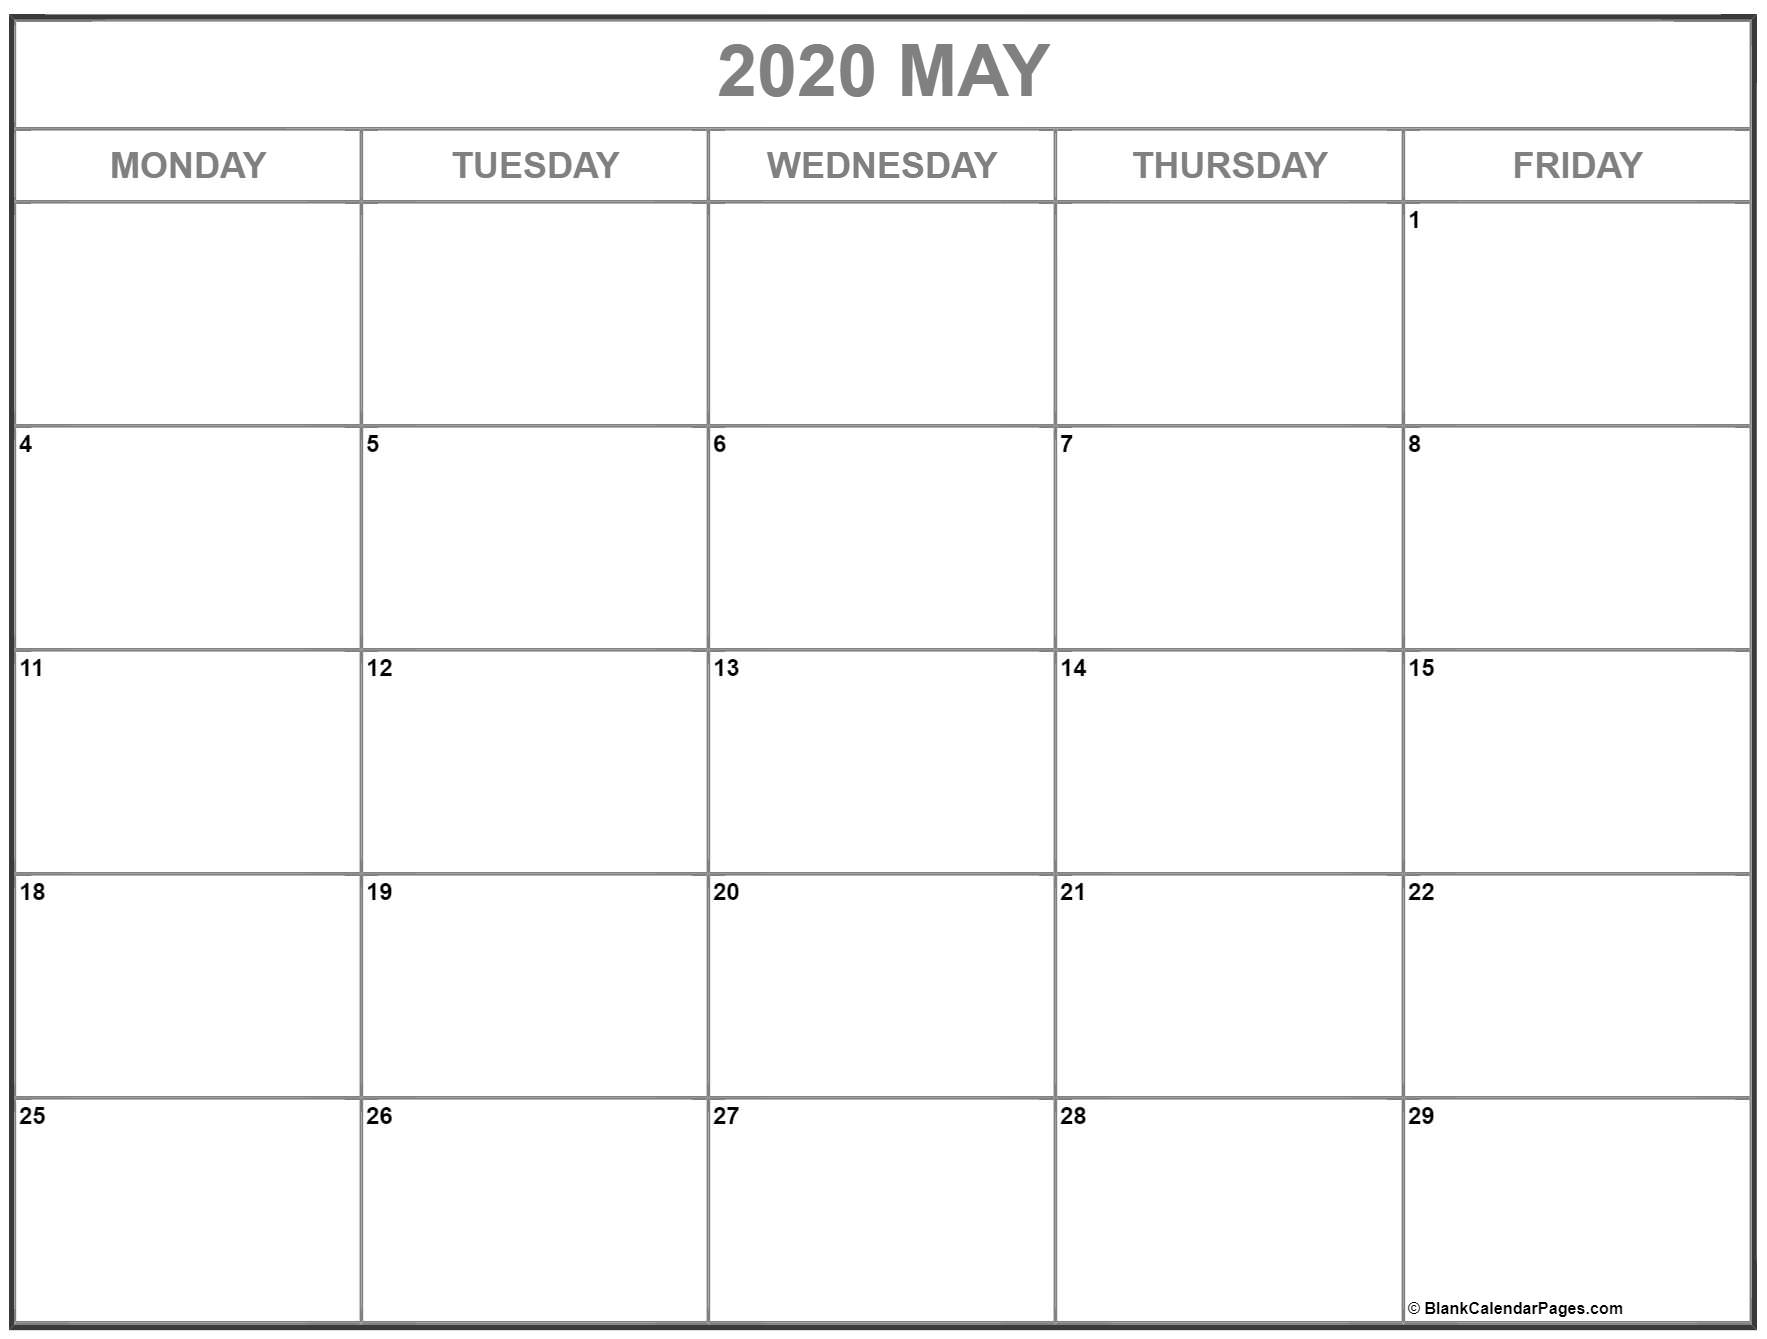 May 2020 Monday Calendar | Monday To Sunday intended for Monday-Friday Calendar Template